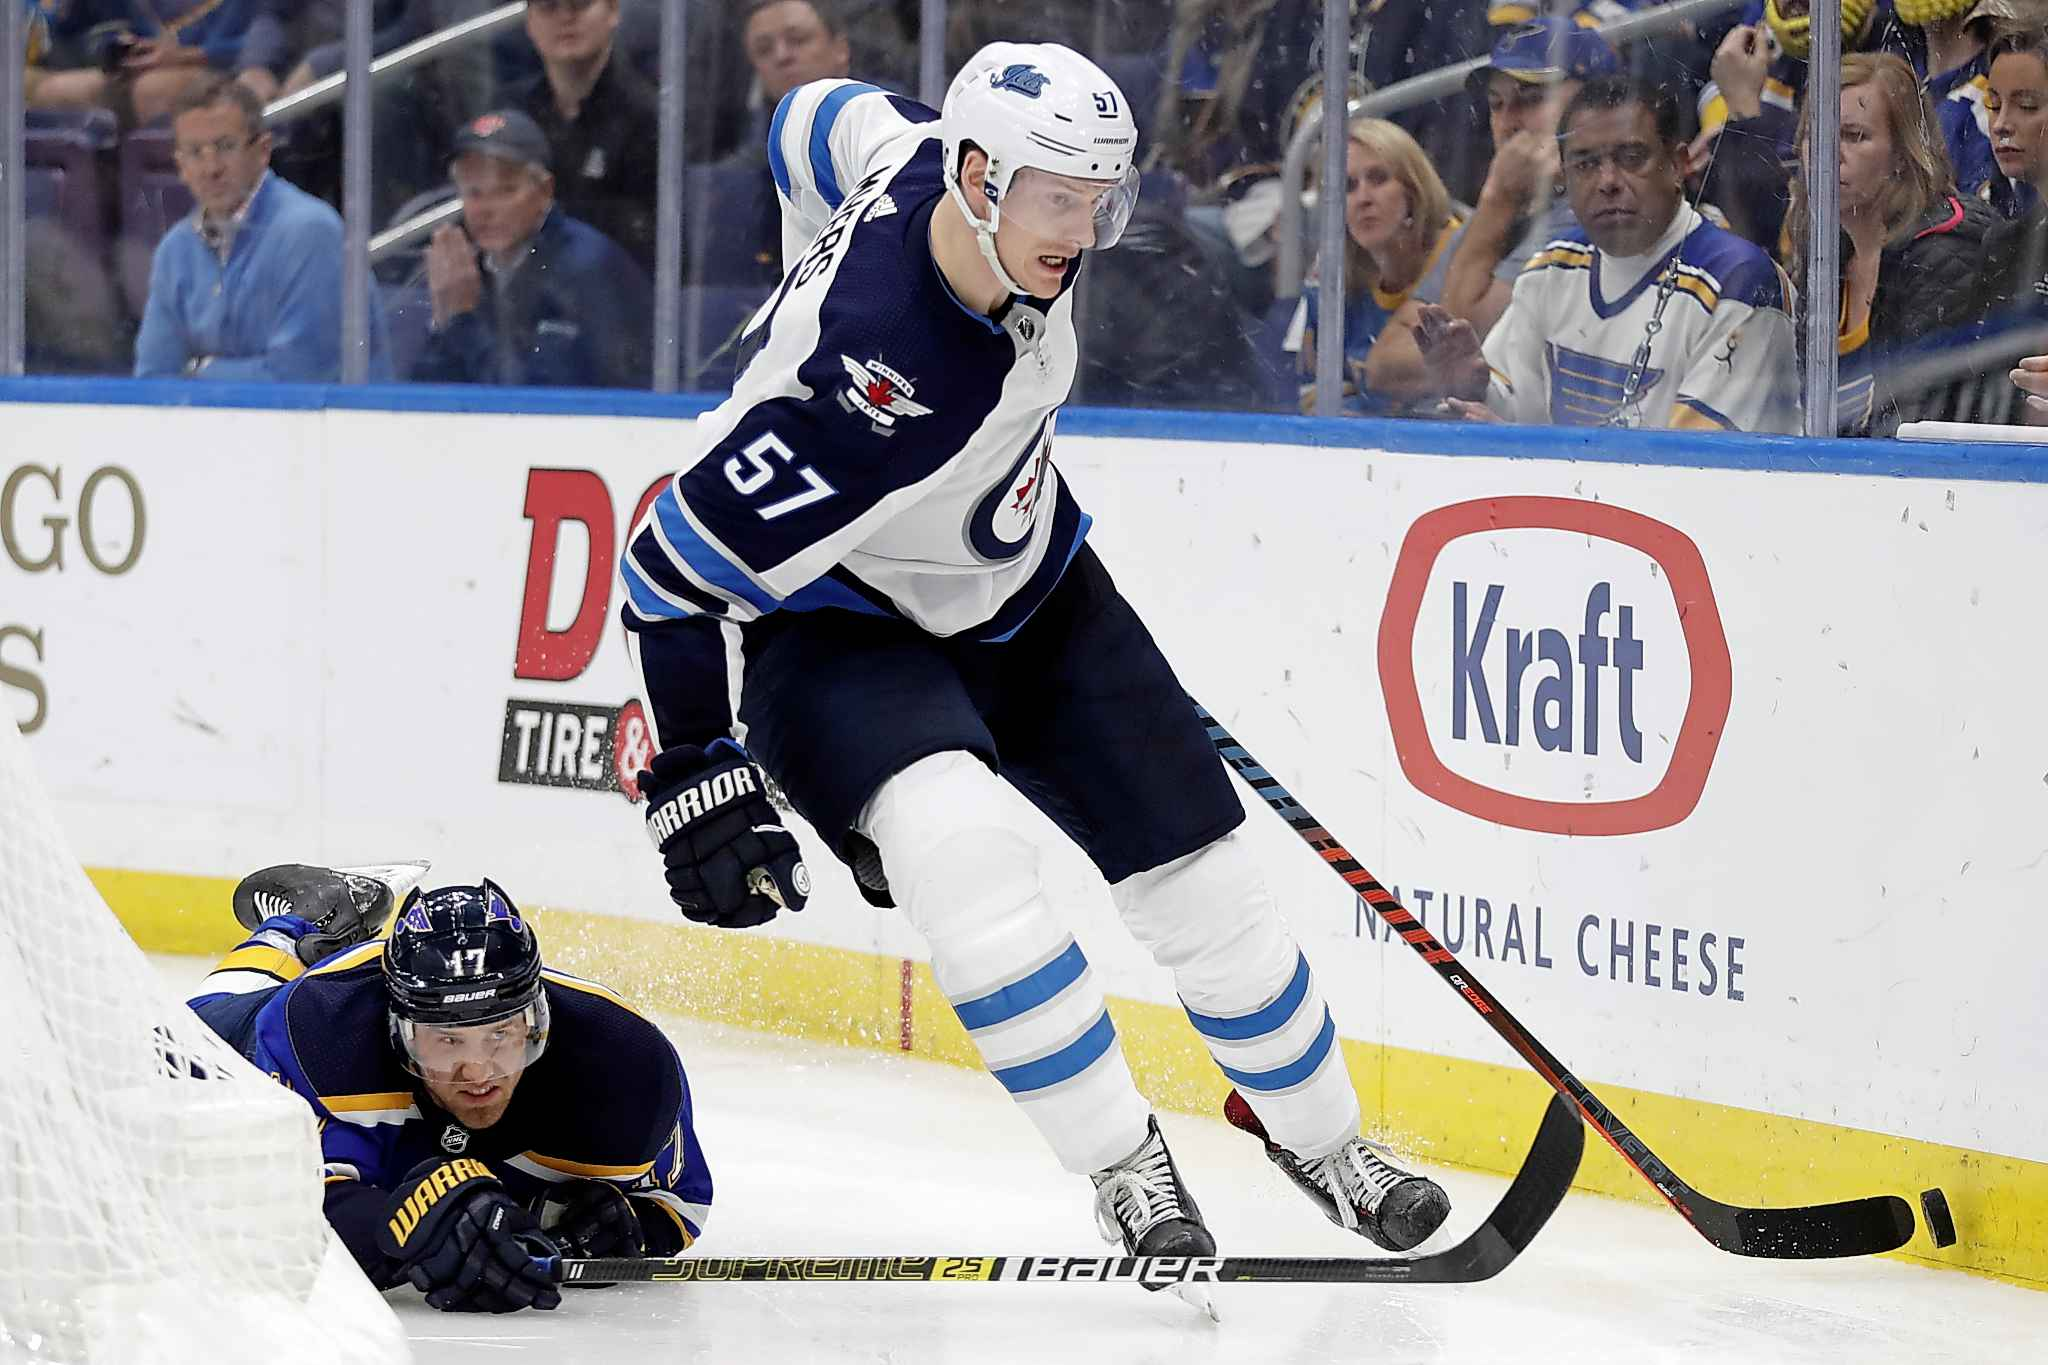 Winnipeg Jets defenseman Tyler Myers (57) moves the puck past the reach of St. Louis Blues left wing Jaden Schwartz (17) during overtime in Game 4 of an NHL hockey first-round playoff series Tuesday, April 16, 2019, in St. Louis. (AP Photo/Jeff Roberson)